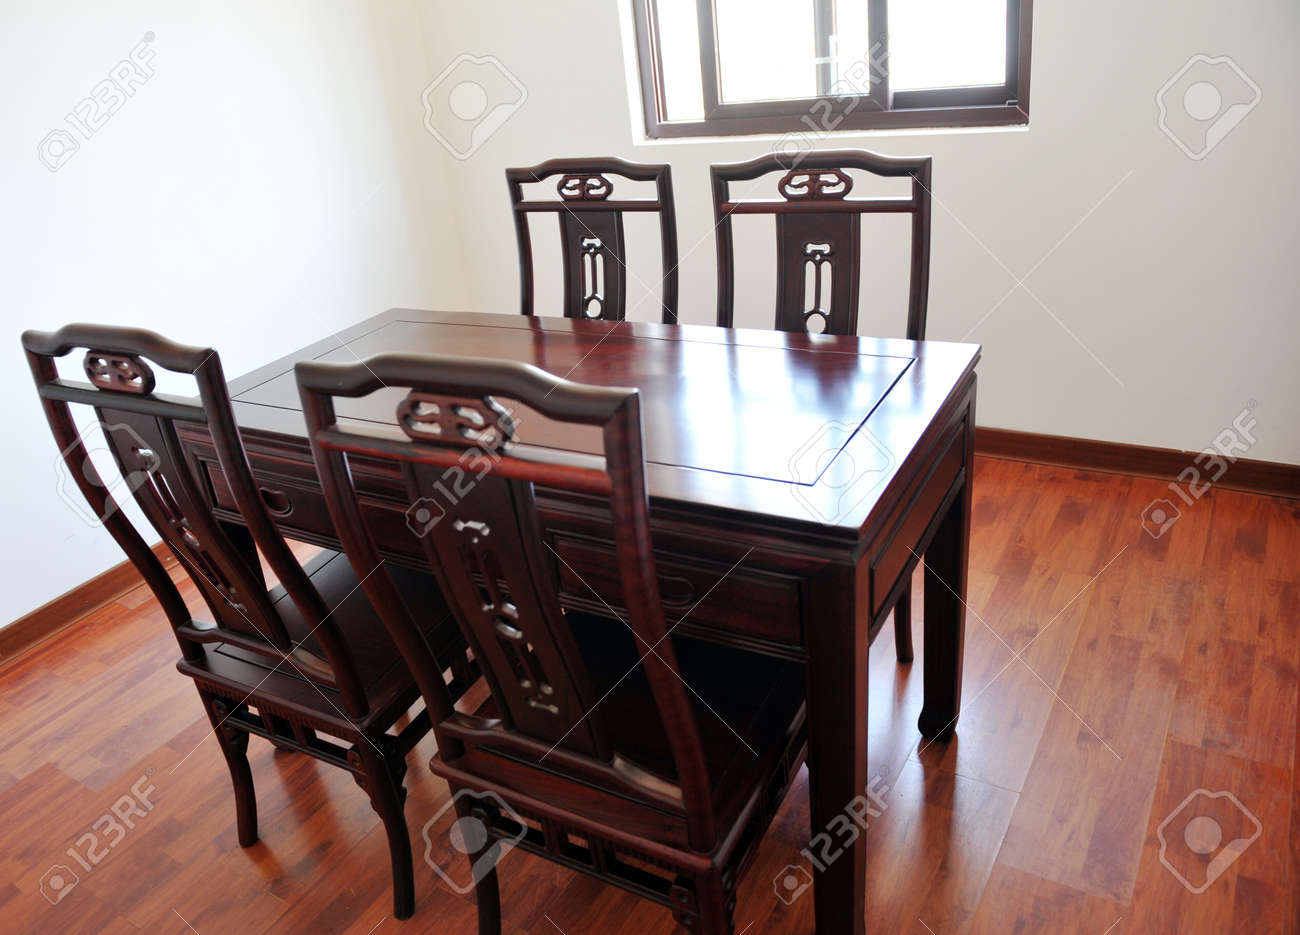 123RF.com & Chinese dining room with dark wood table four chairs and window..